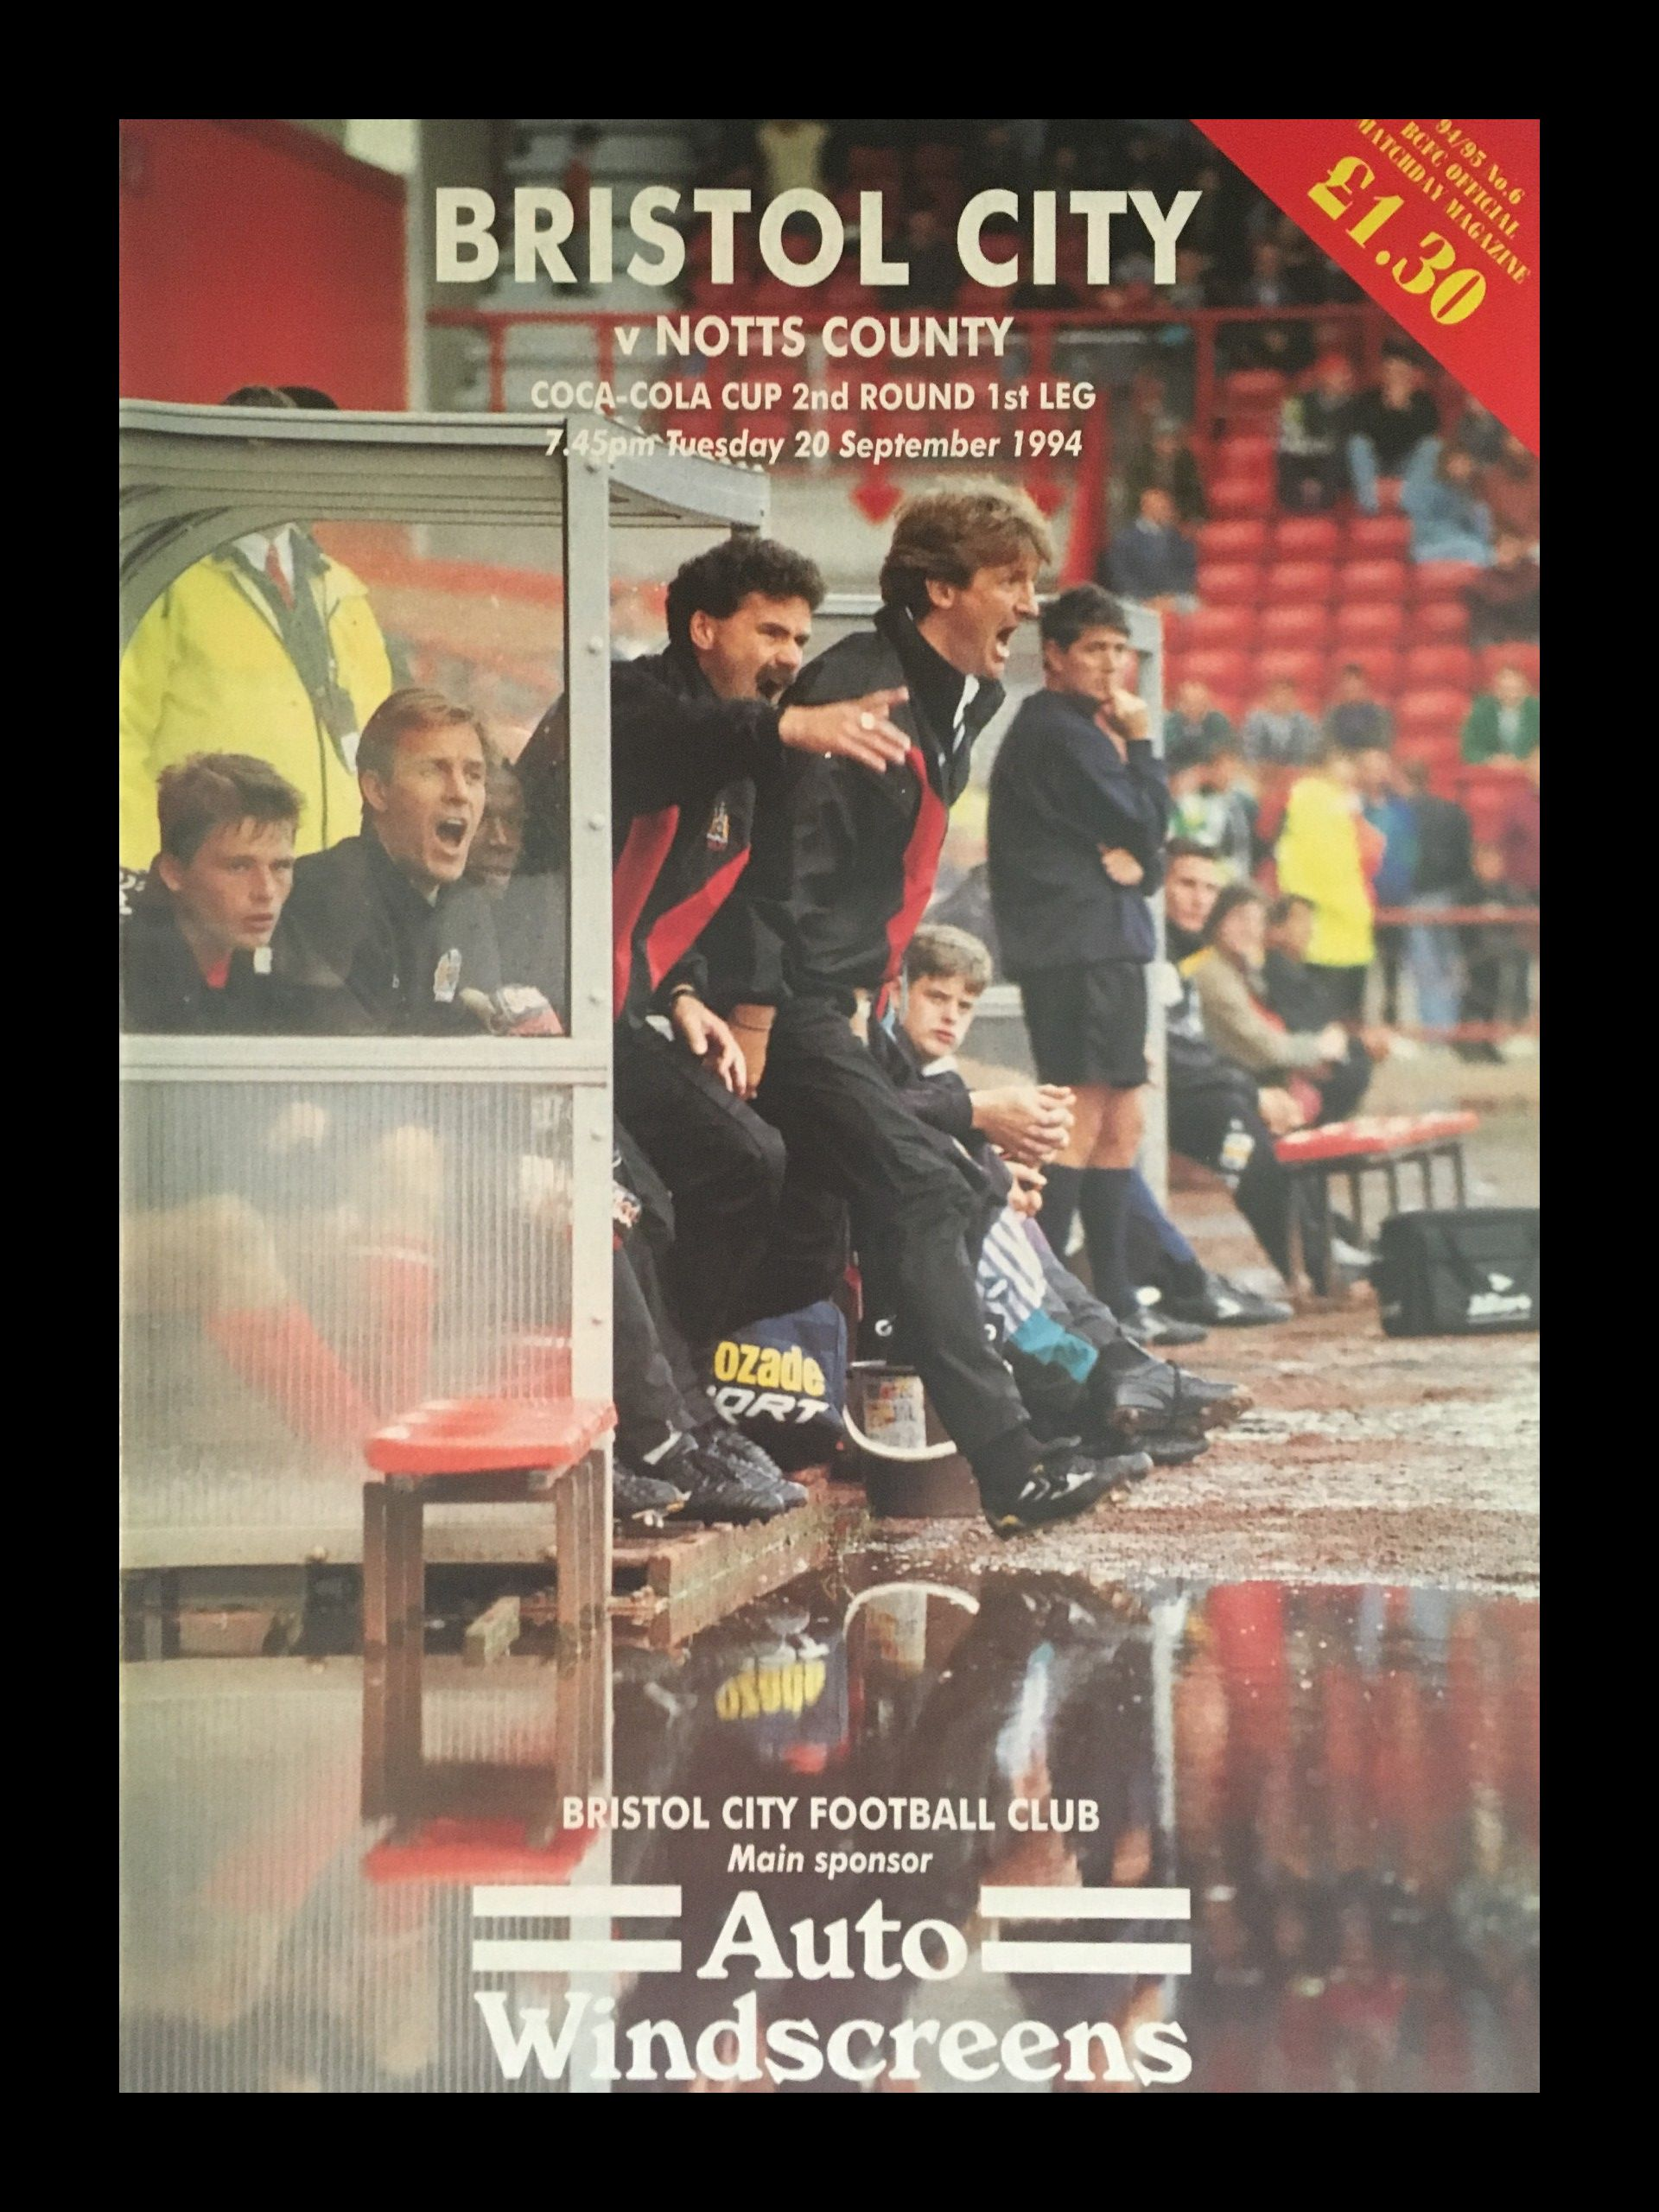 Bristol City v Notts County 20-09-1994 Programme